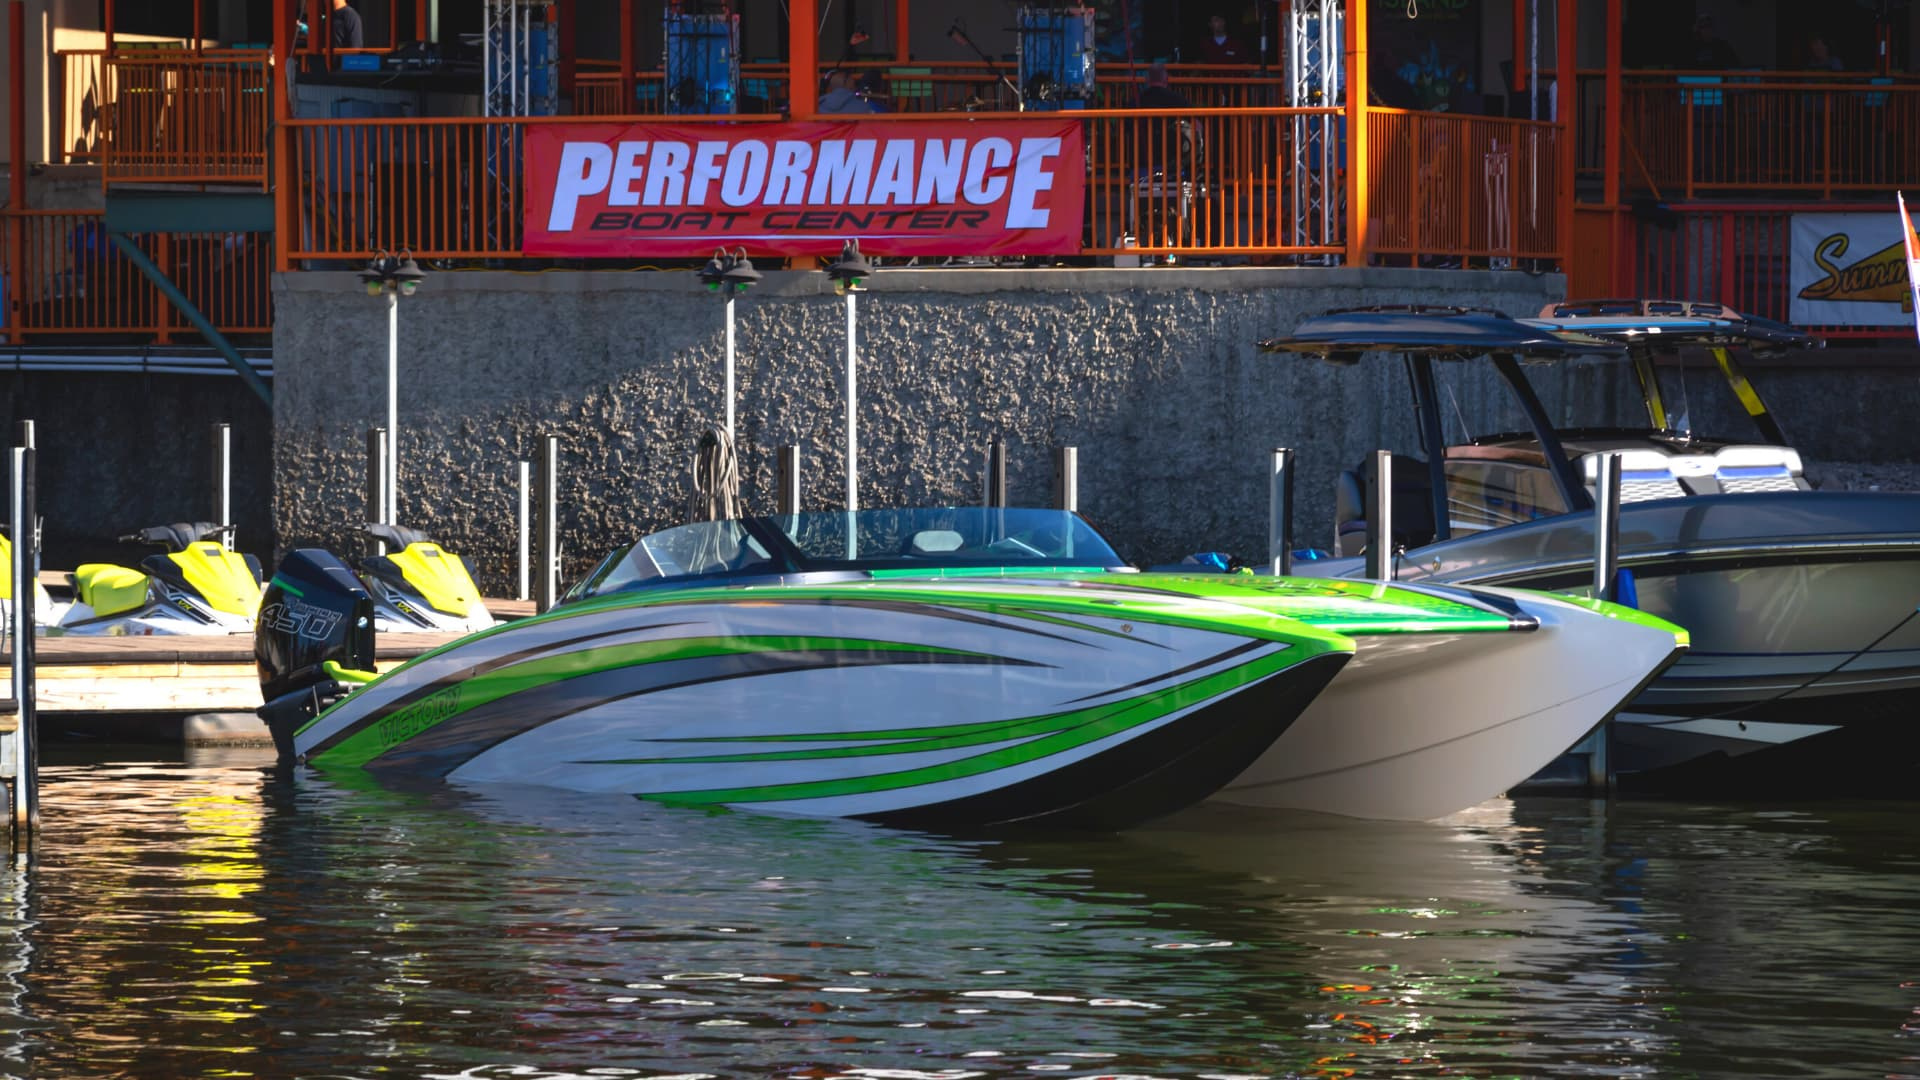 Green white and black powerboat